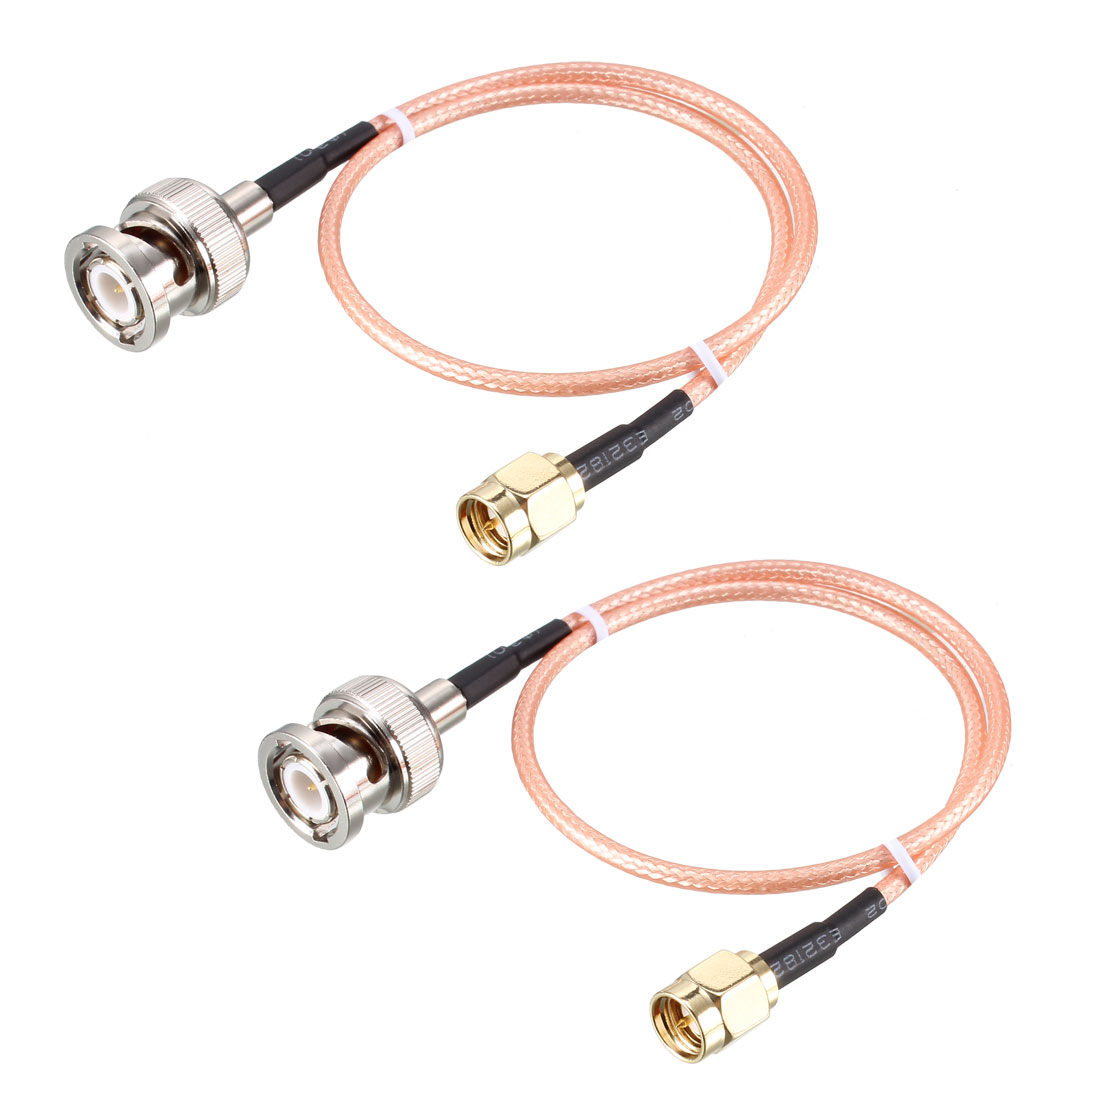 RG316 Coaxial Cable with BNC Male to SMA Male Connectors 50 Ohm 1 ft 2pcs